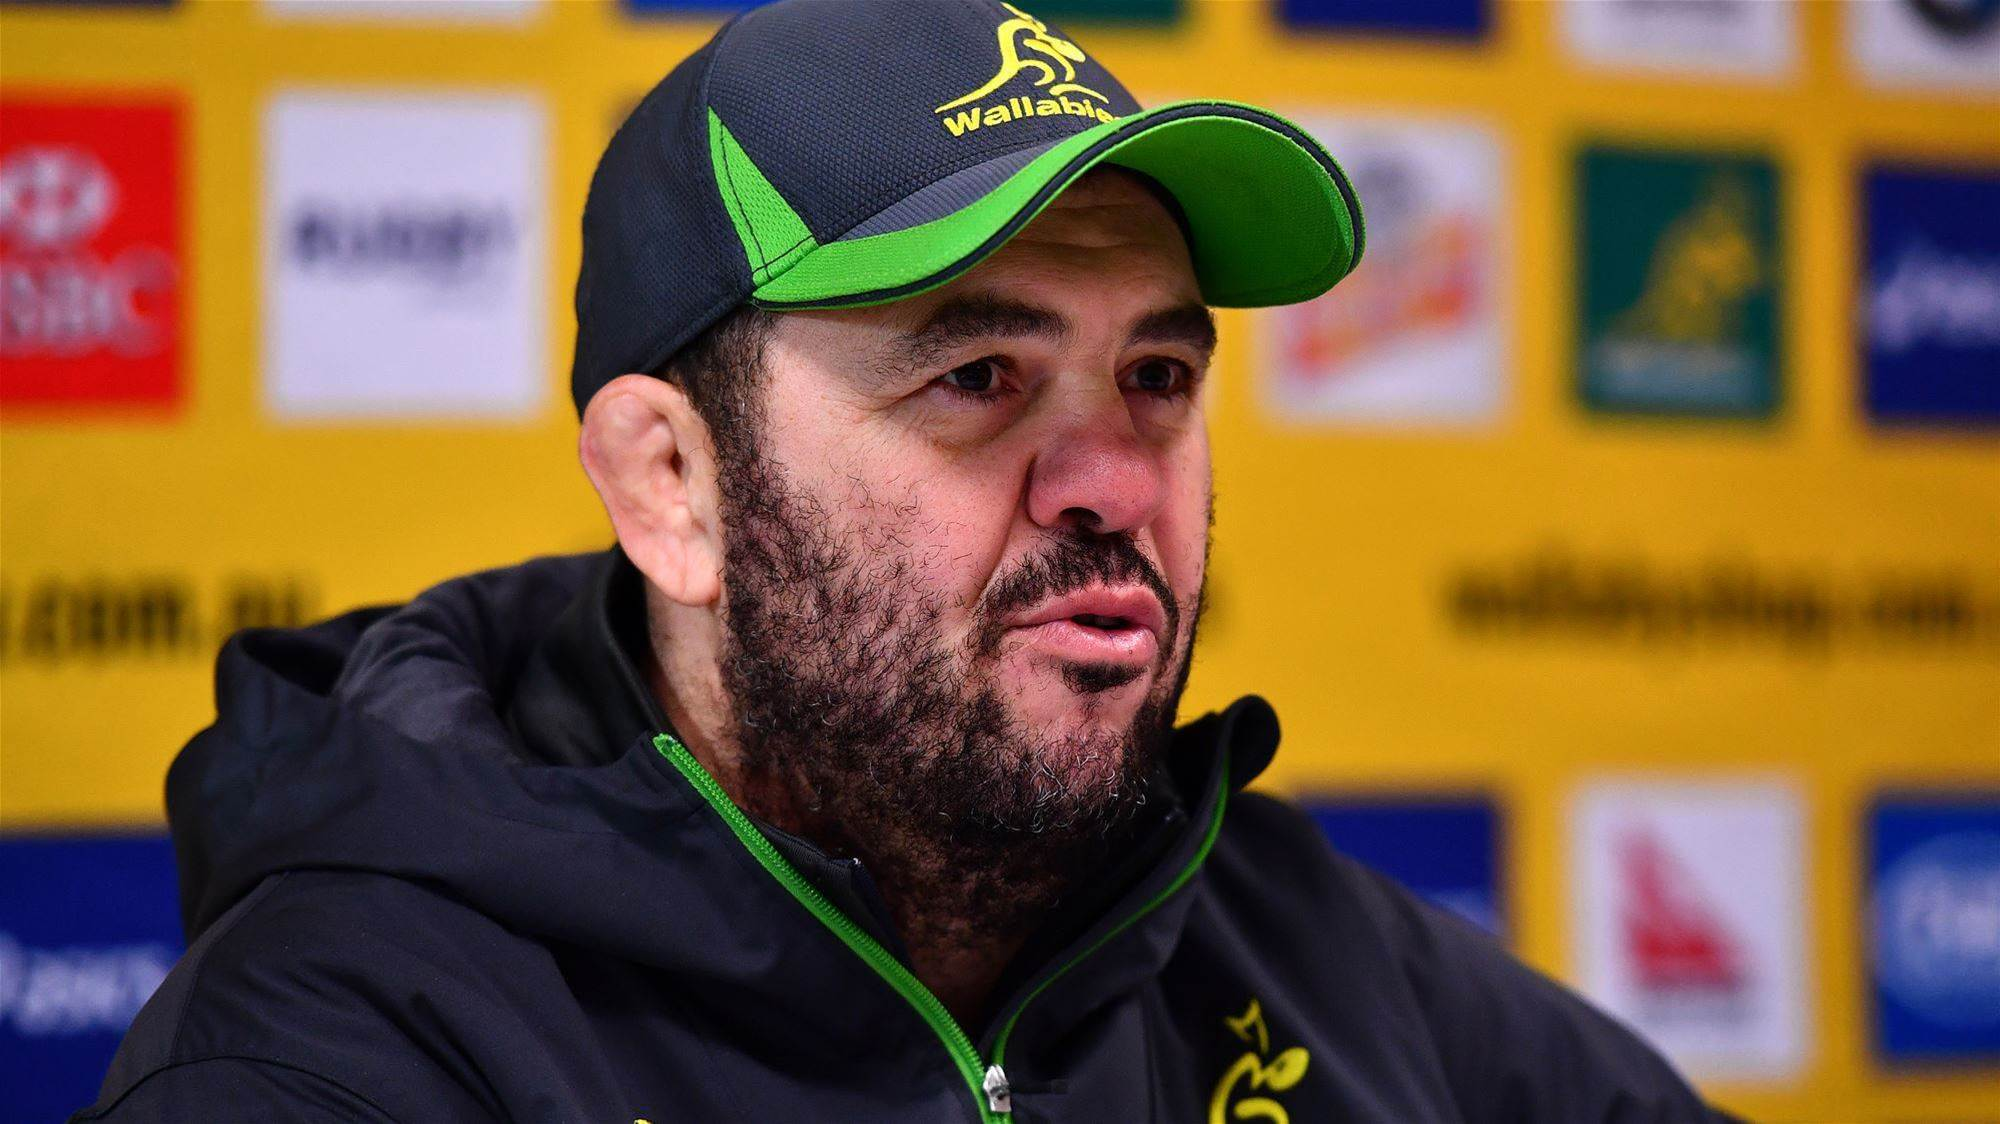 Cheika puts former Wallabies coach in his place